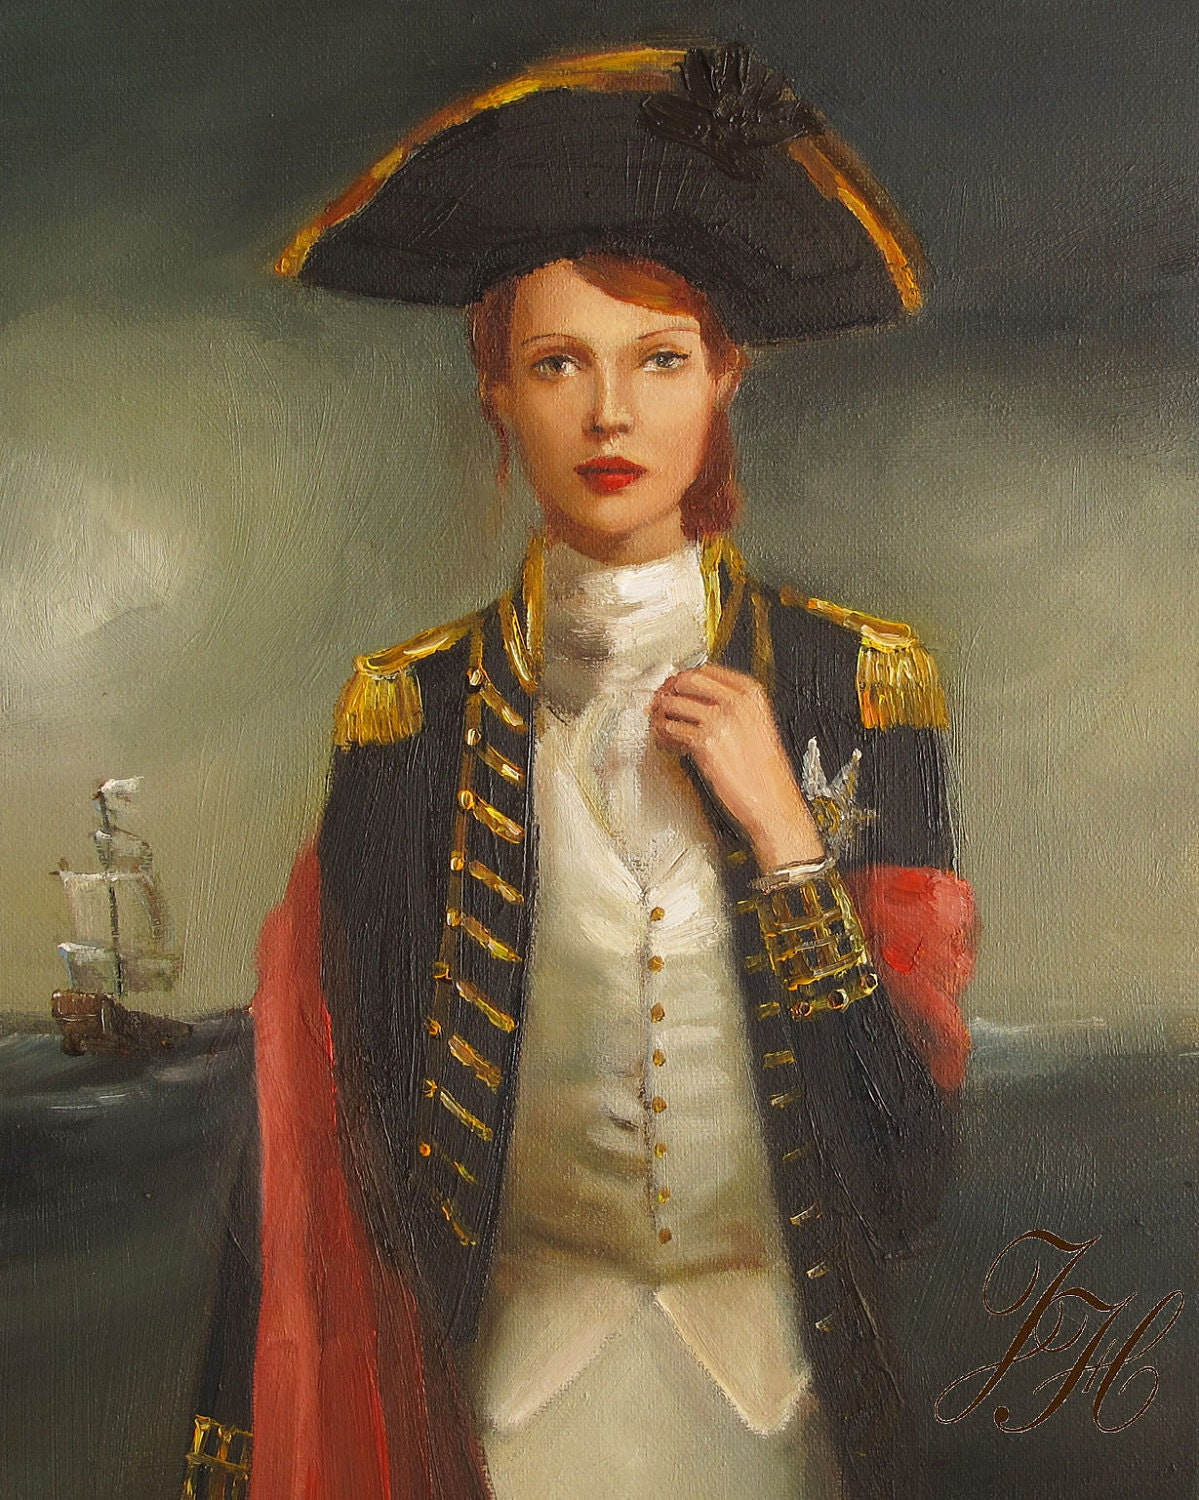 Portrait- Her Face Launched A Thousand Ships- Art Print - janethillstudio